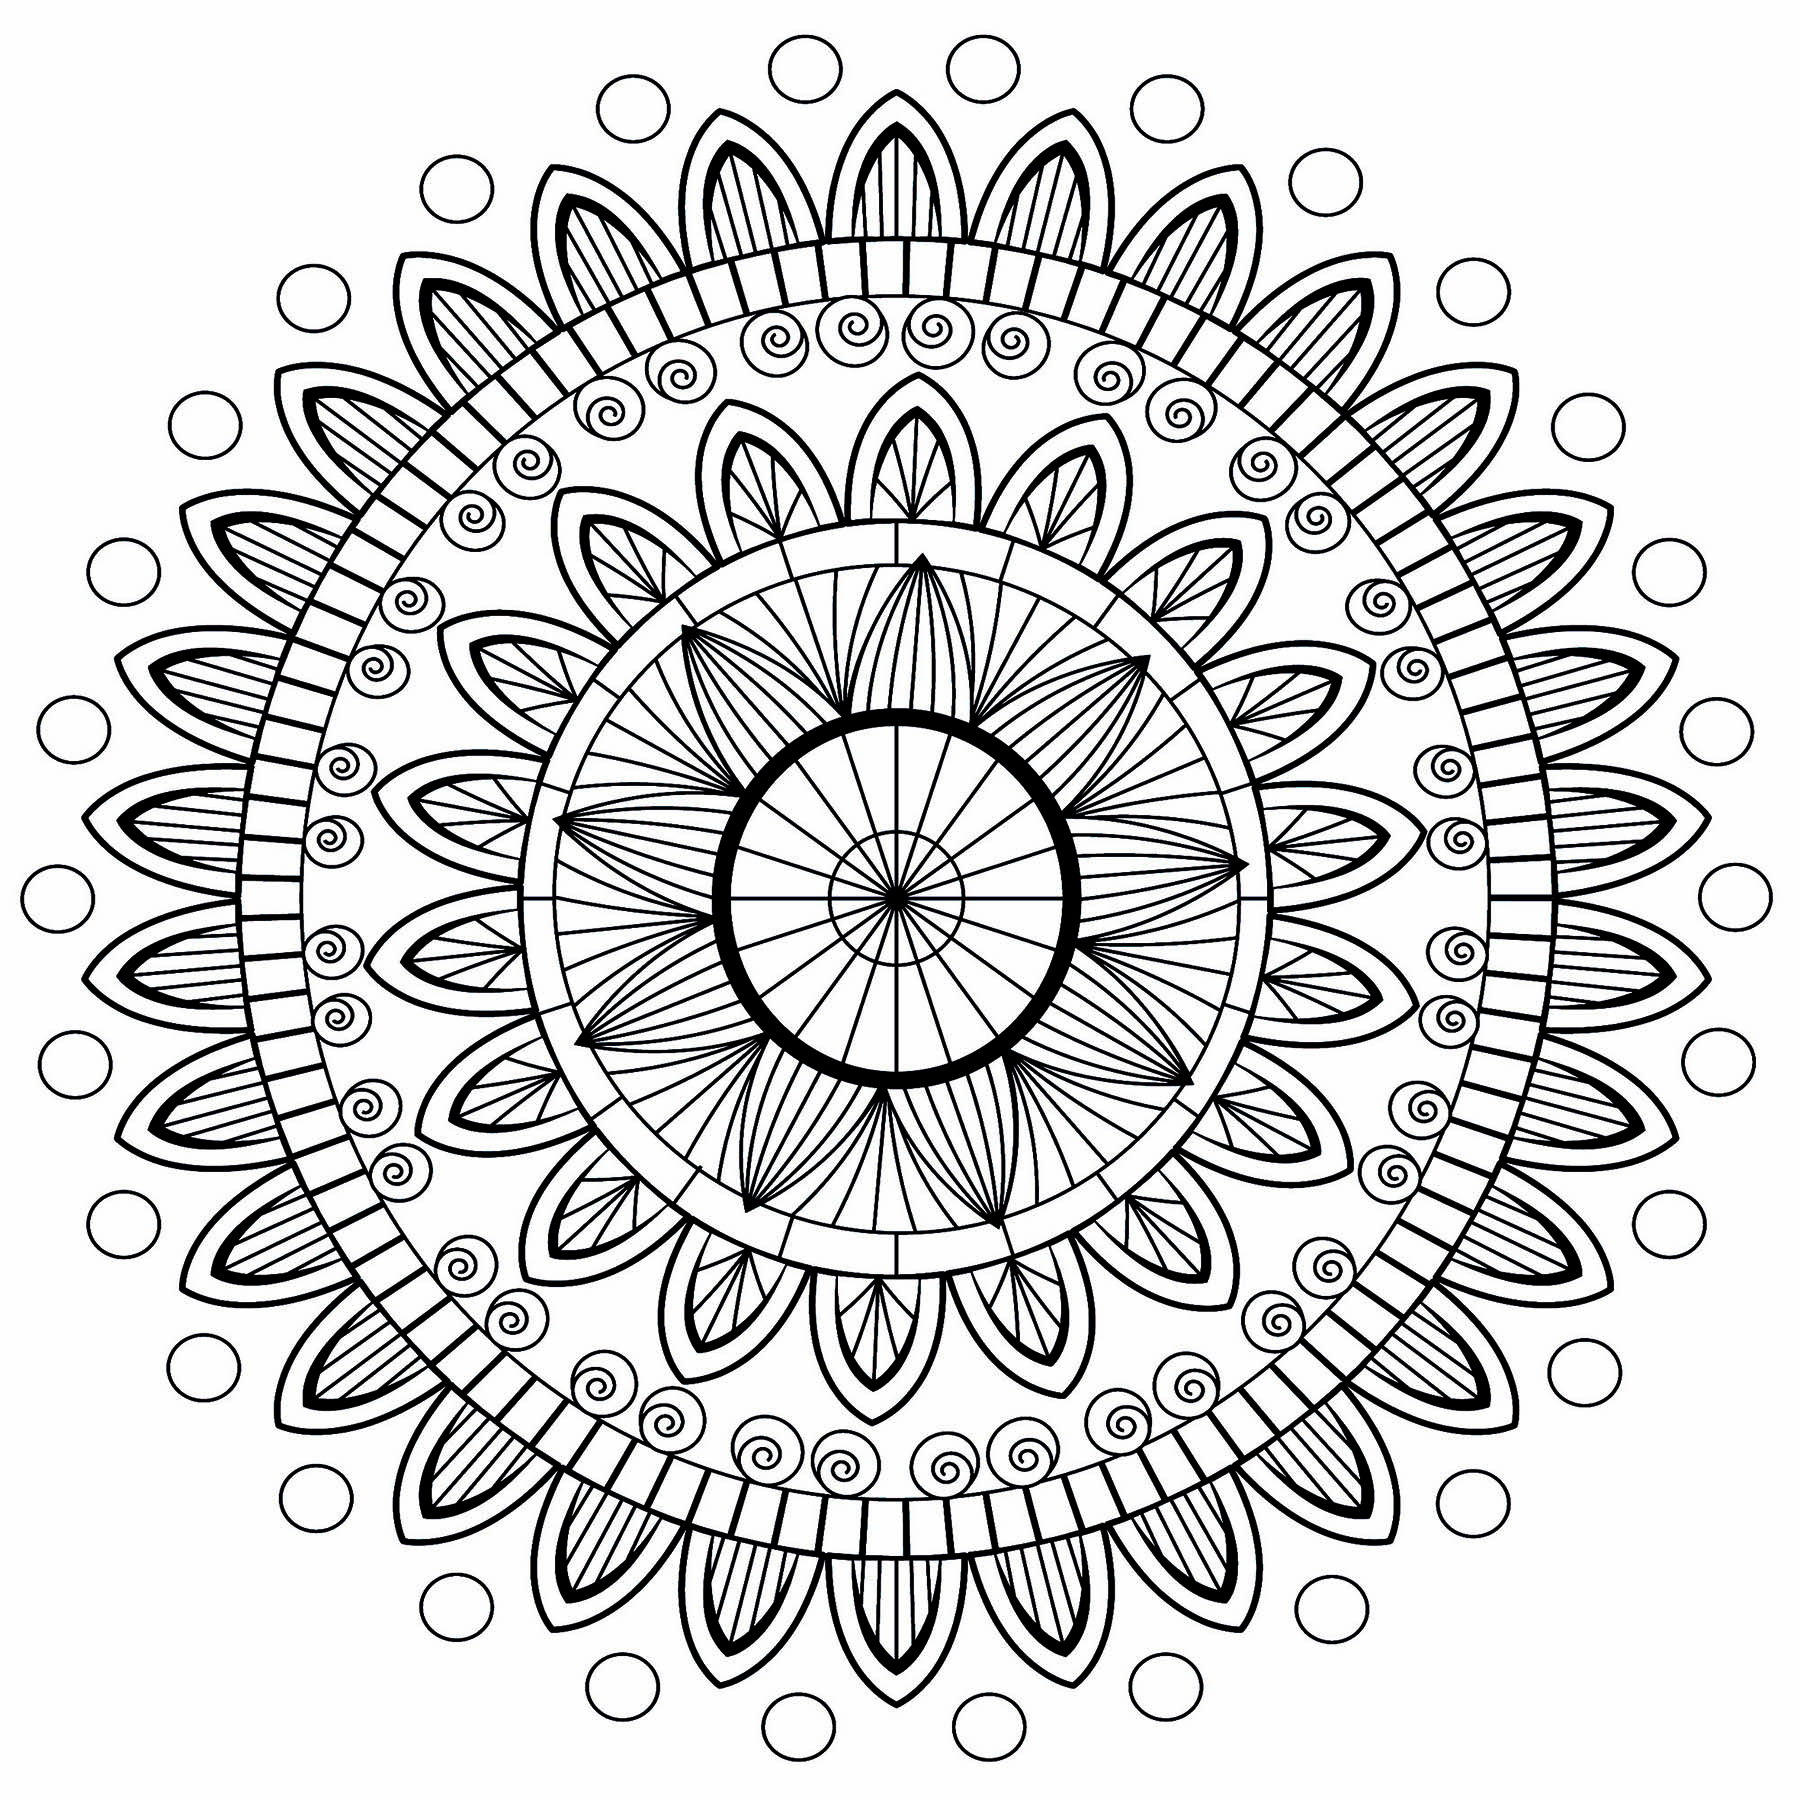 A pretty Mandala with various levels of elegant and regular petals. To color with all your creativity